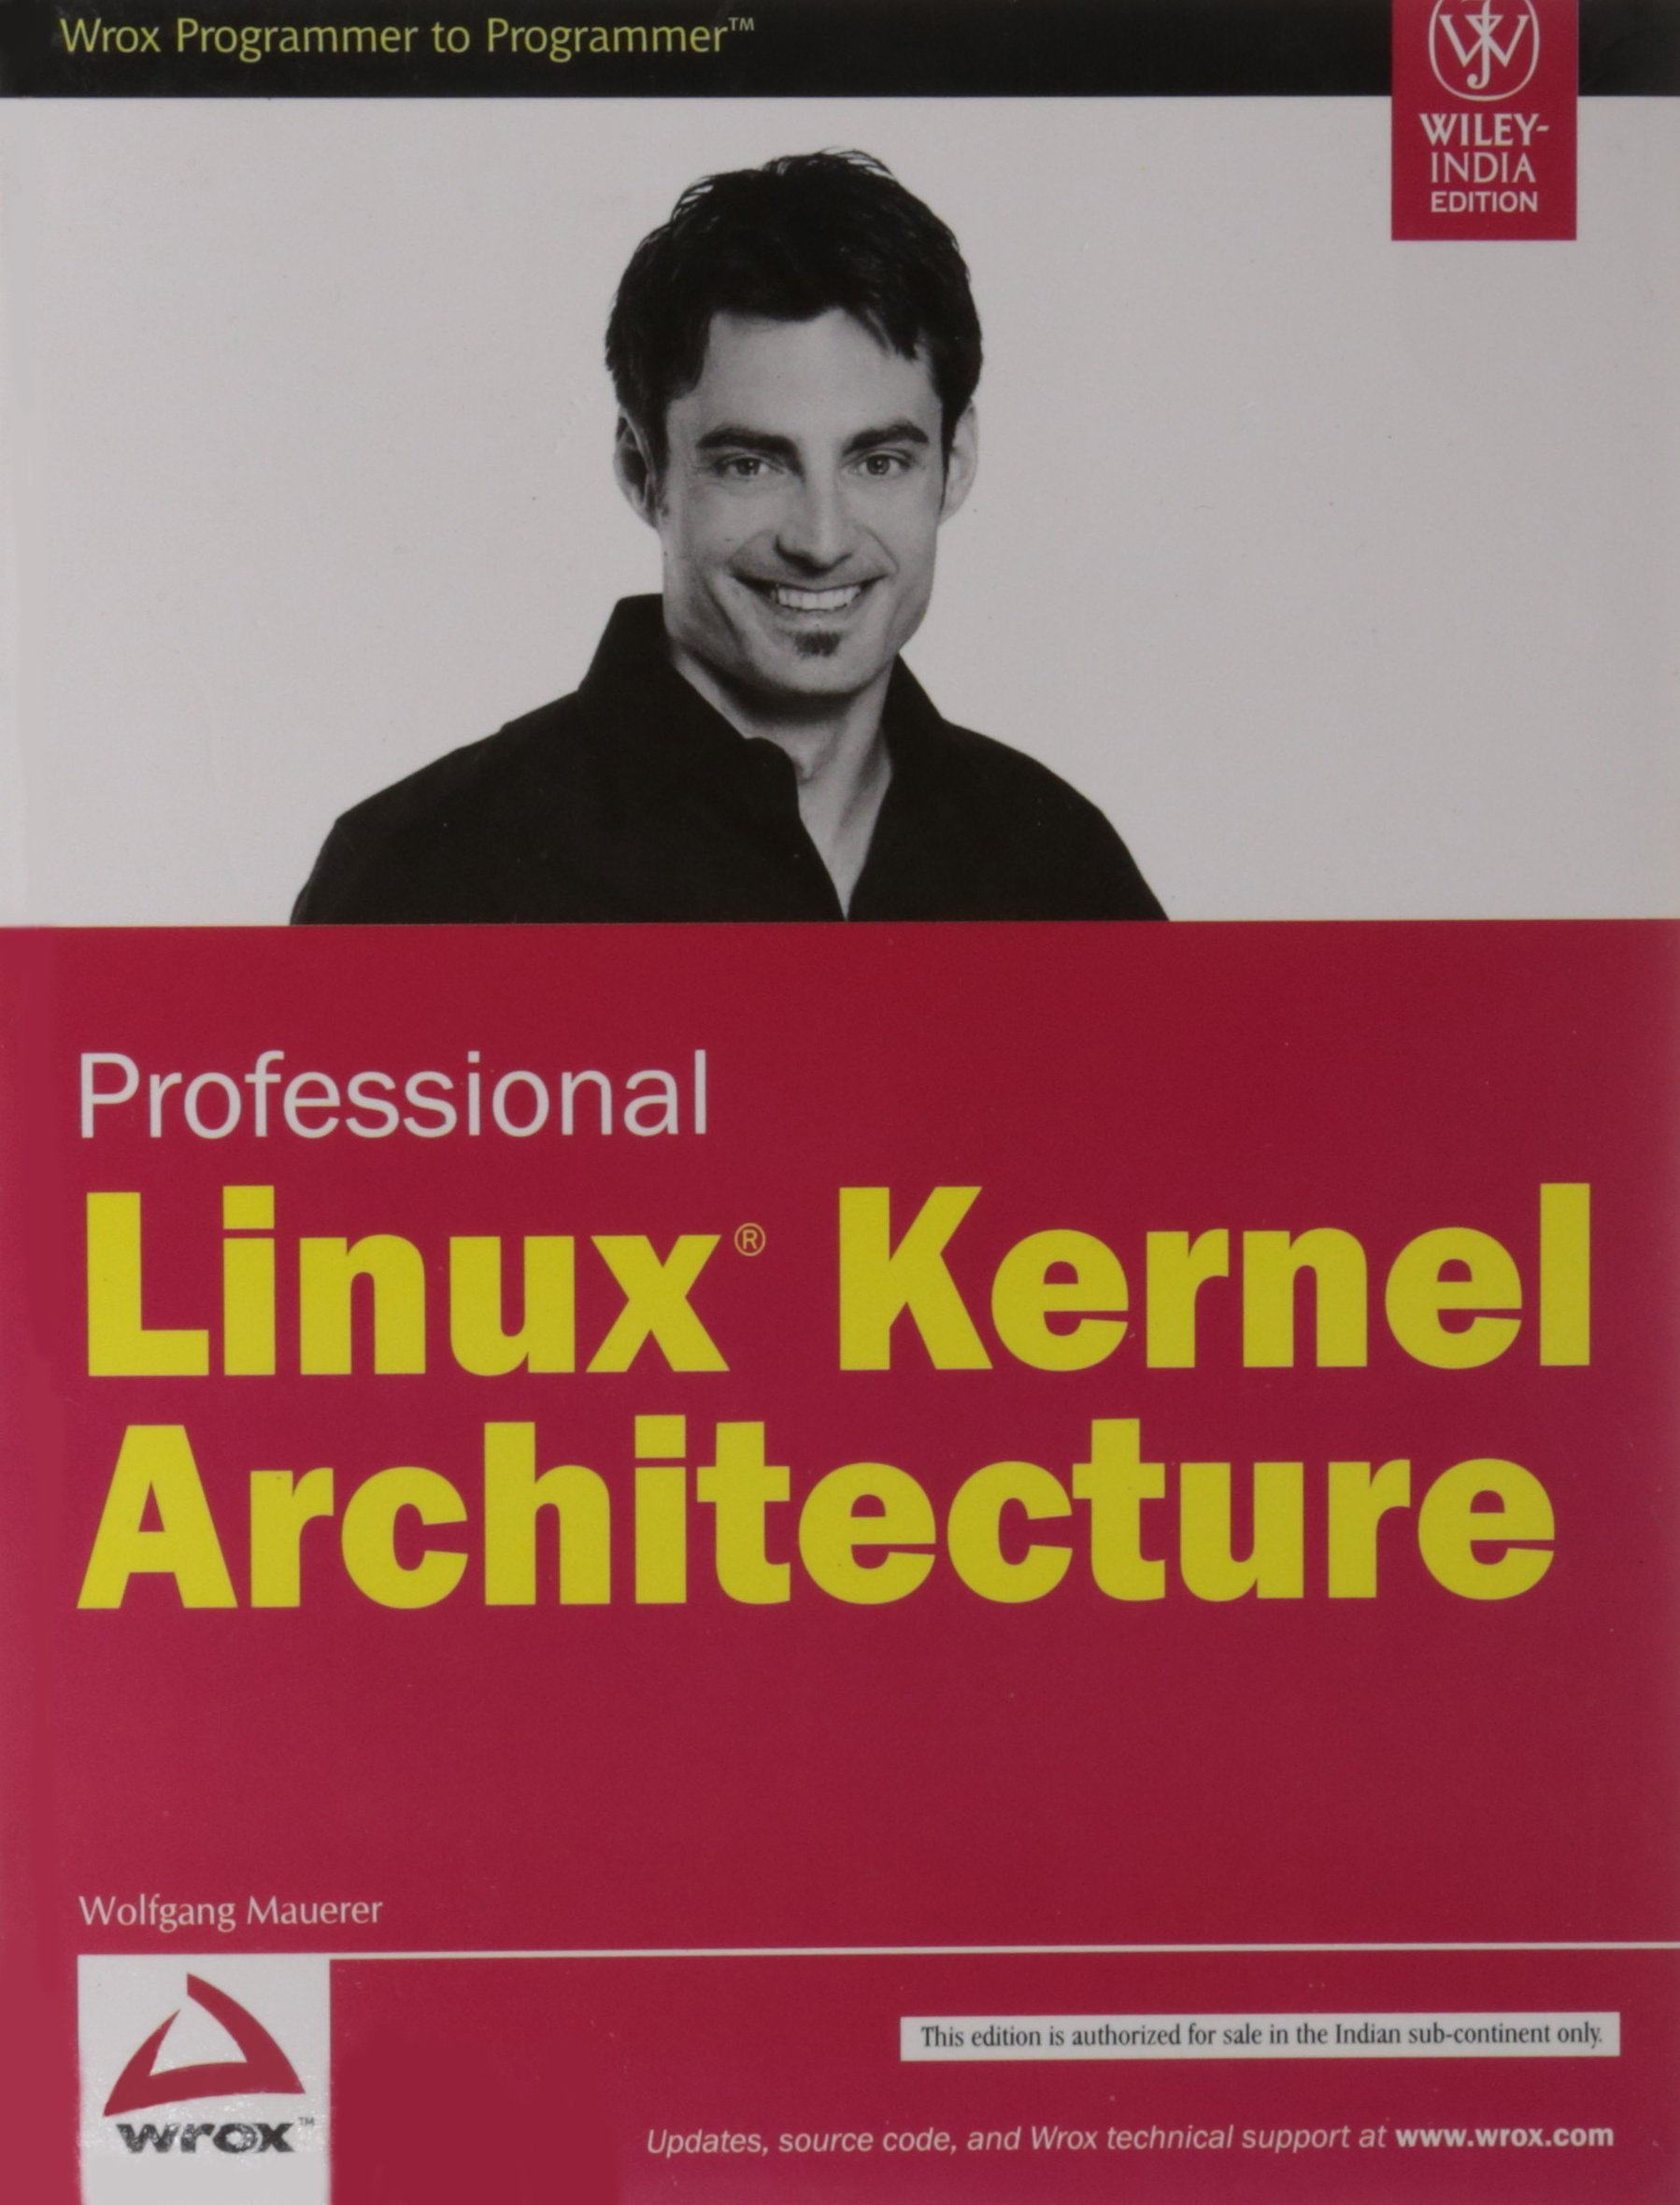 Professional Linux Kernel Architecture Ebook